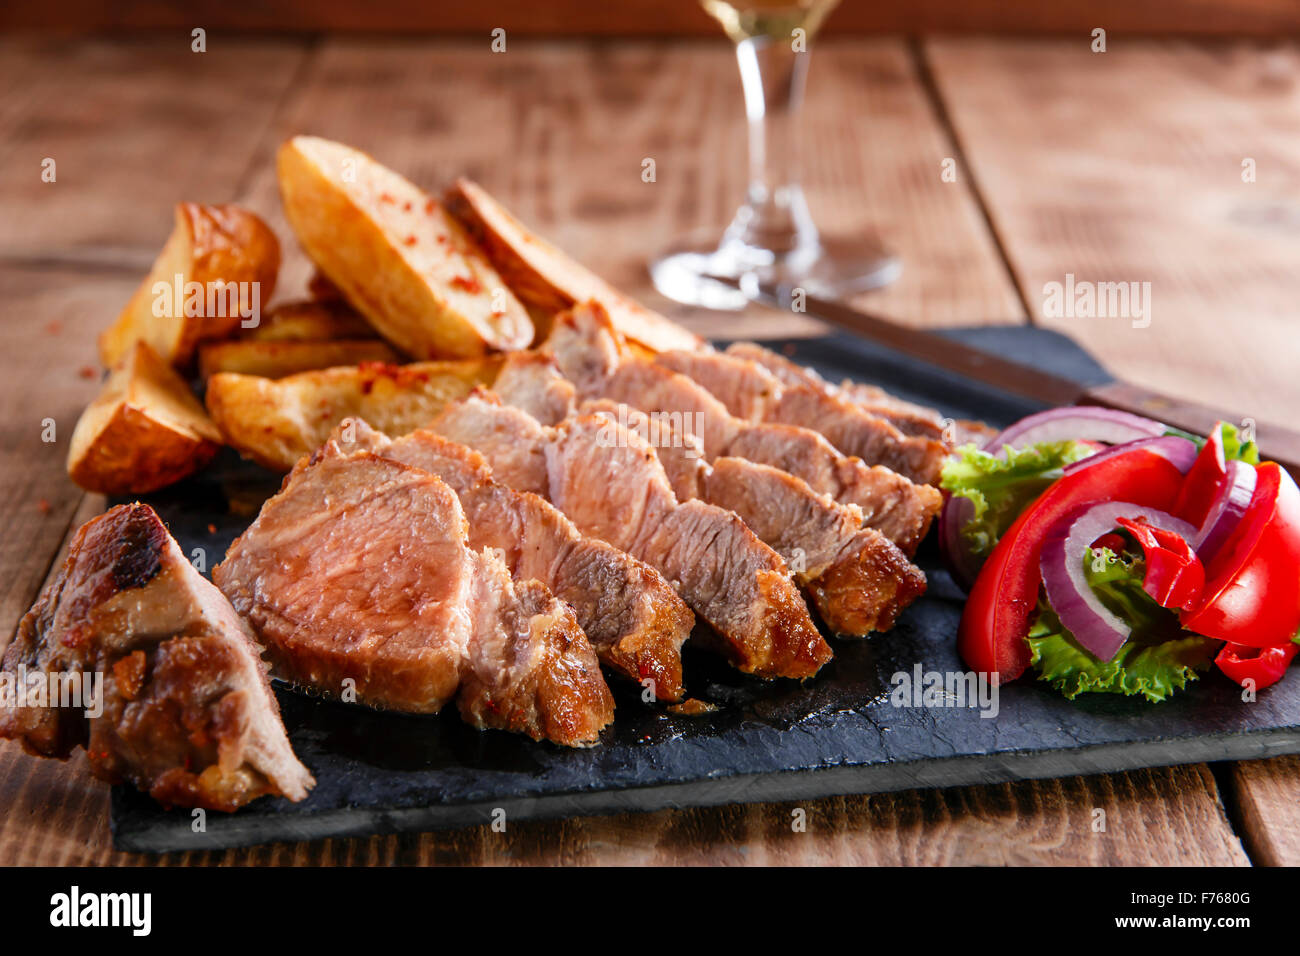 Sliced pork steak with fried potatoes - Stock Image